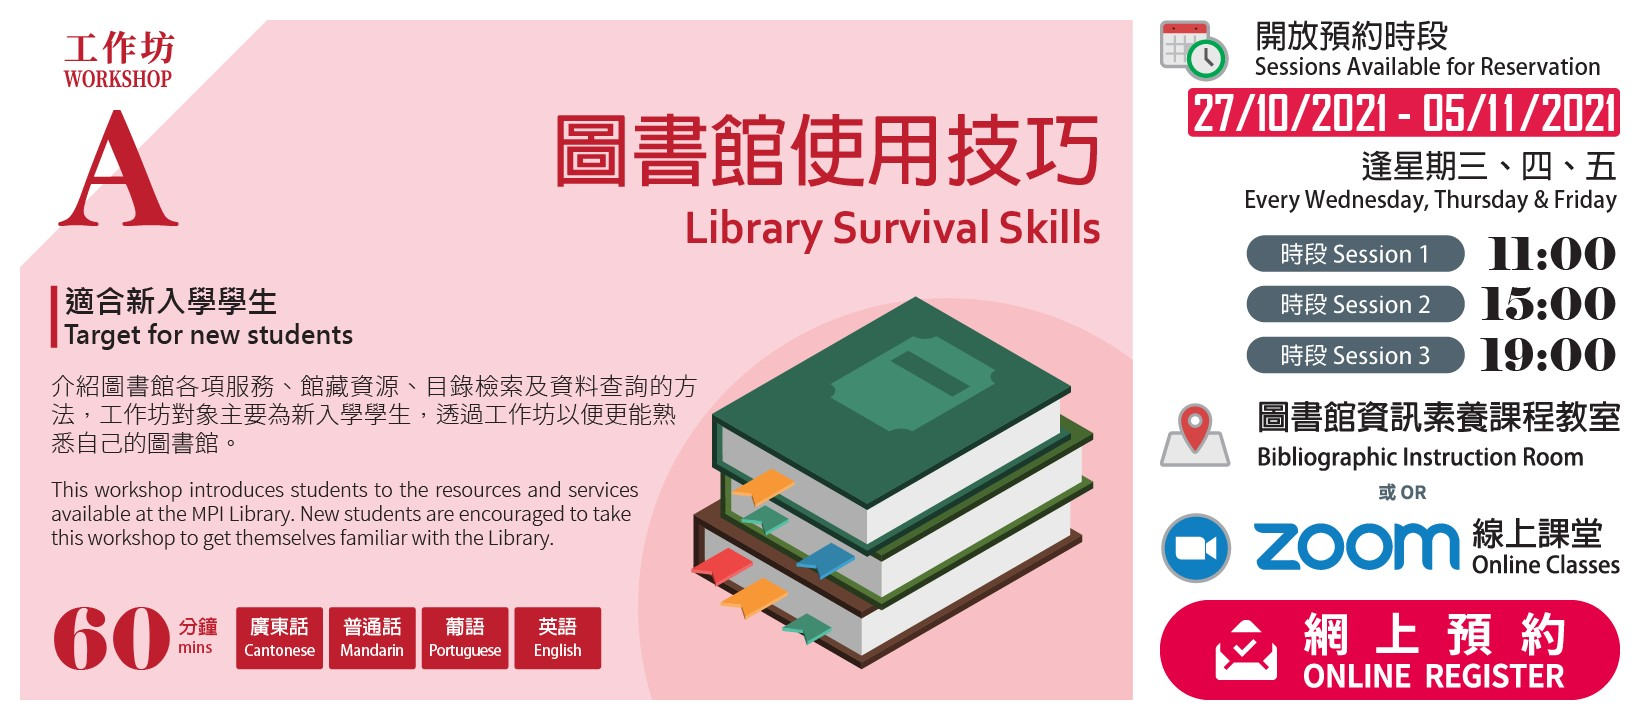 LIBRARY WORKSHOP A: Library Survival Skills